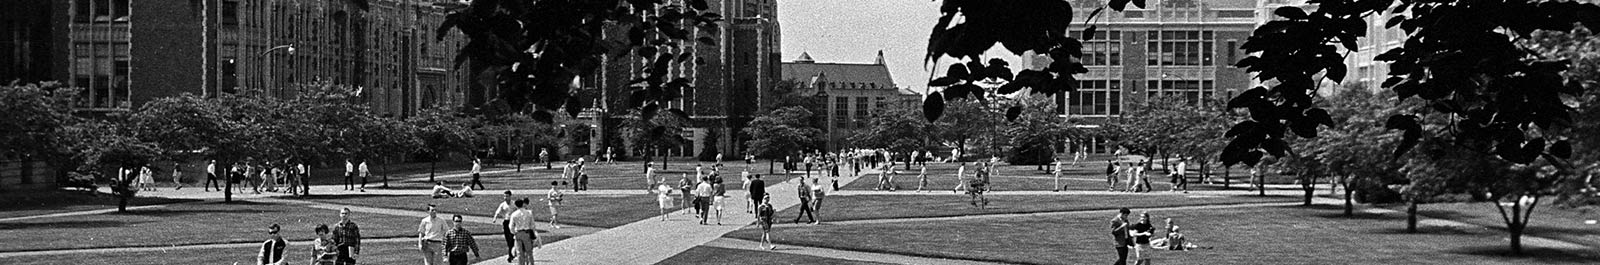 UW Quad with students outside 05/1967